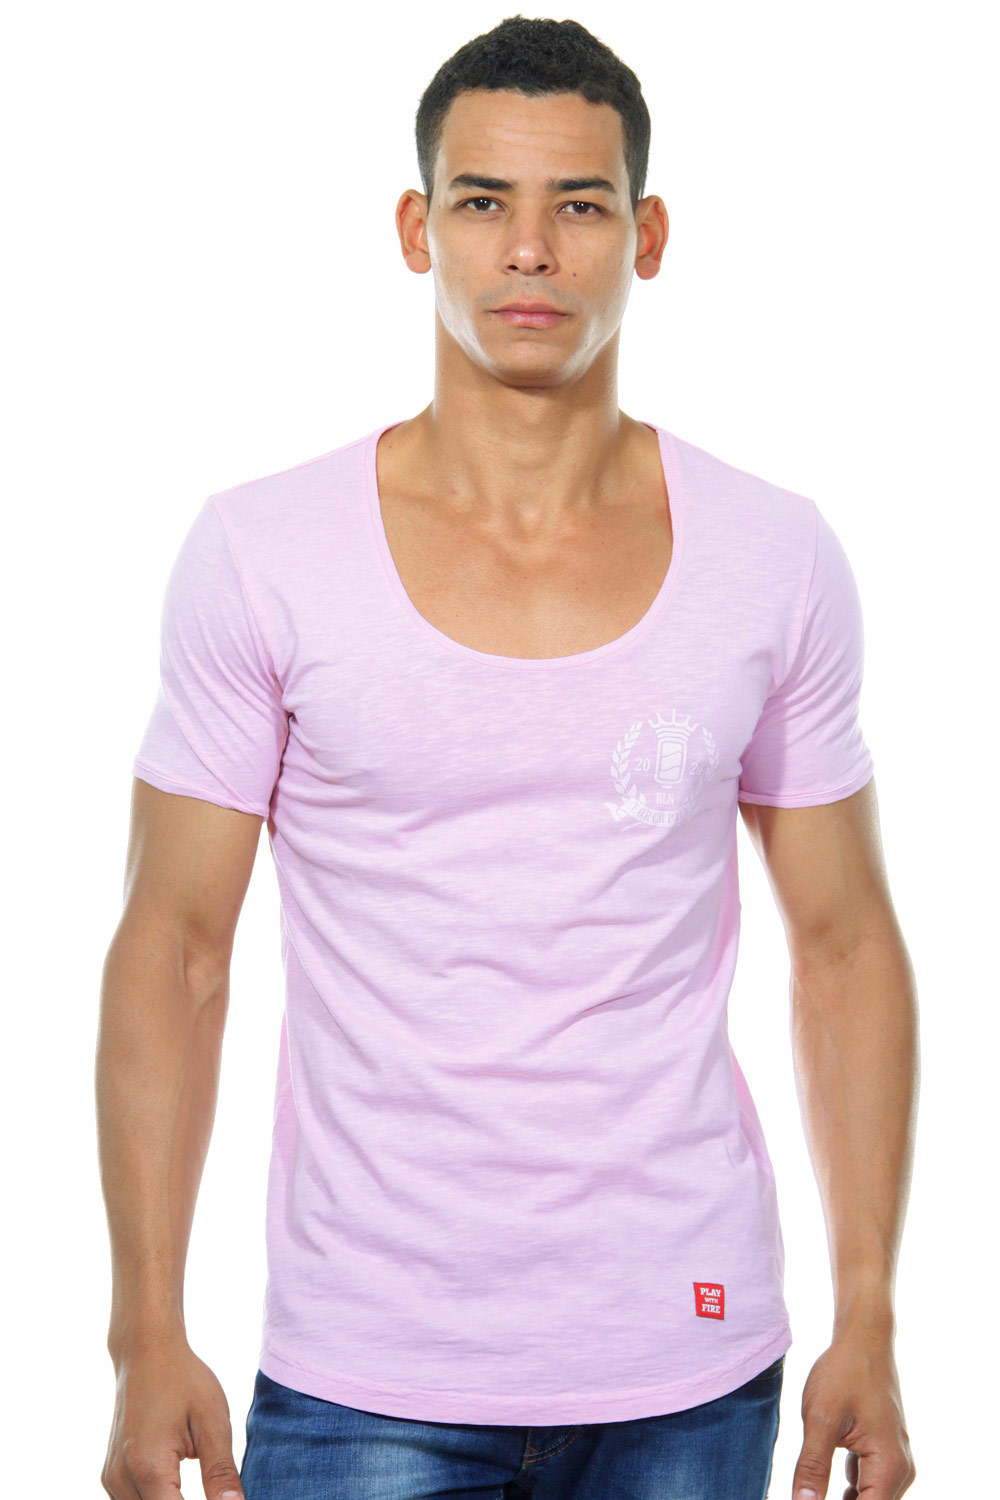 TORCHPACK SEAL U-NECK 4402 T-Shirt Rundhals slim fit auf oboy.de